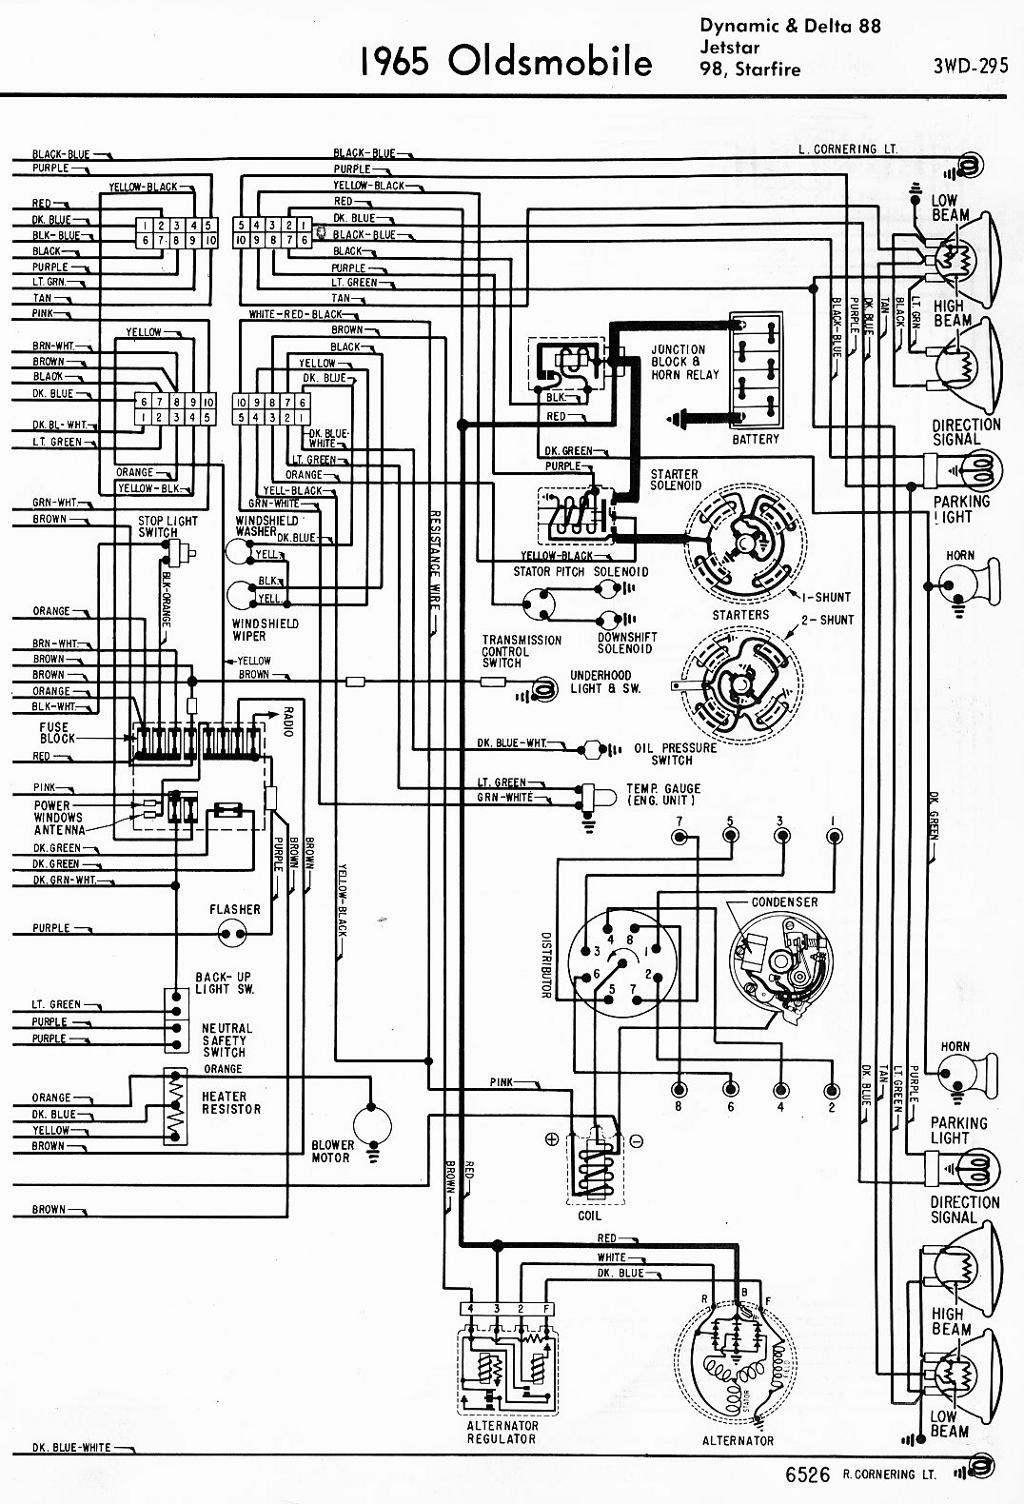 crankshaft sensor for 2000 bravada wiring diagram circuit diagram rh armkandy co GM Dash Wiring Diagrams 1978 GMC Truck Wiring Diagram